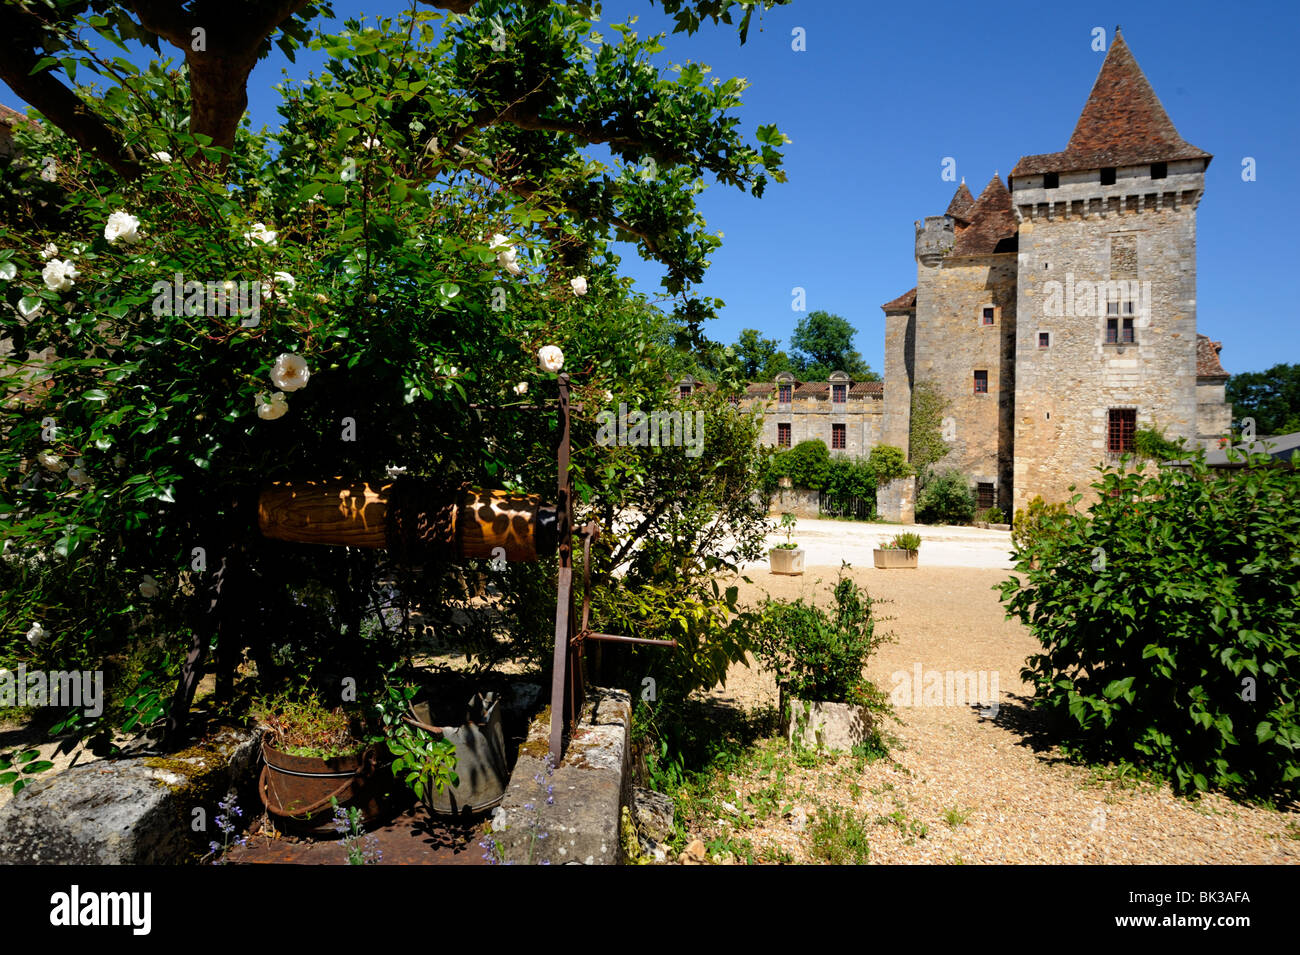 Old well with Le Chateau de la Marthonie in the background, St. Jean de Cole, Dordogne, France, Europe Stock Photo